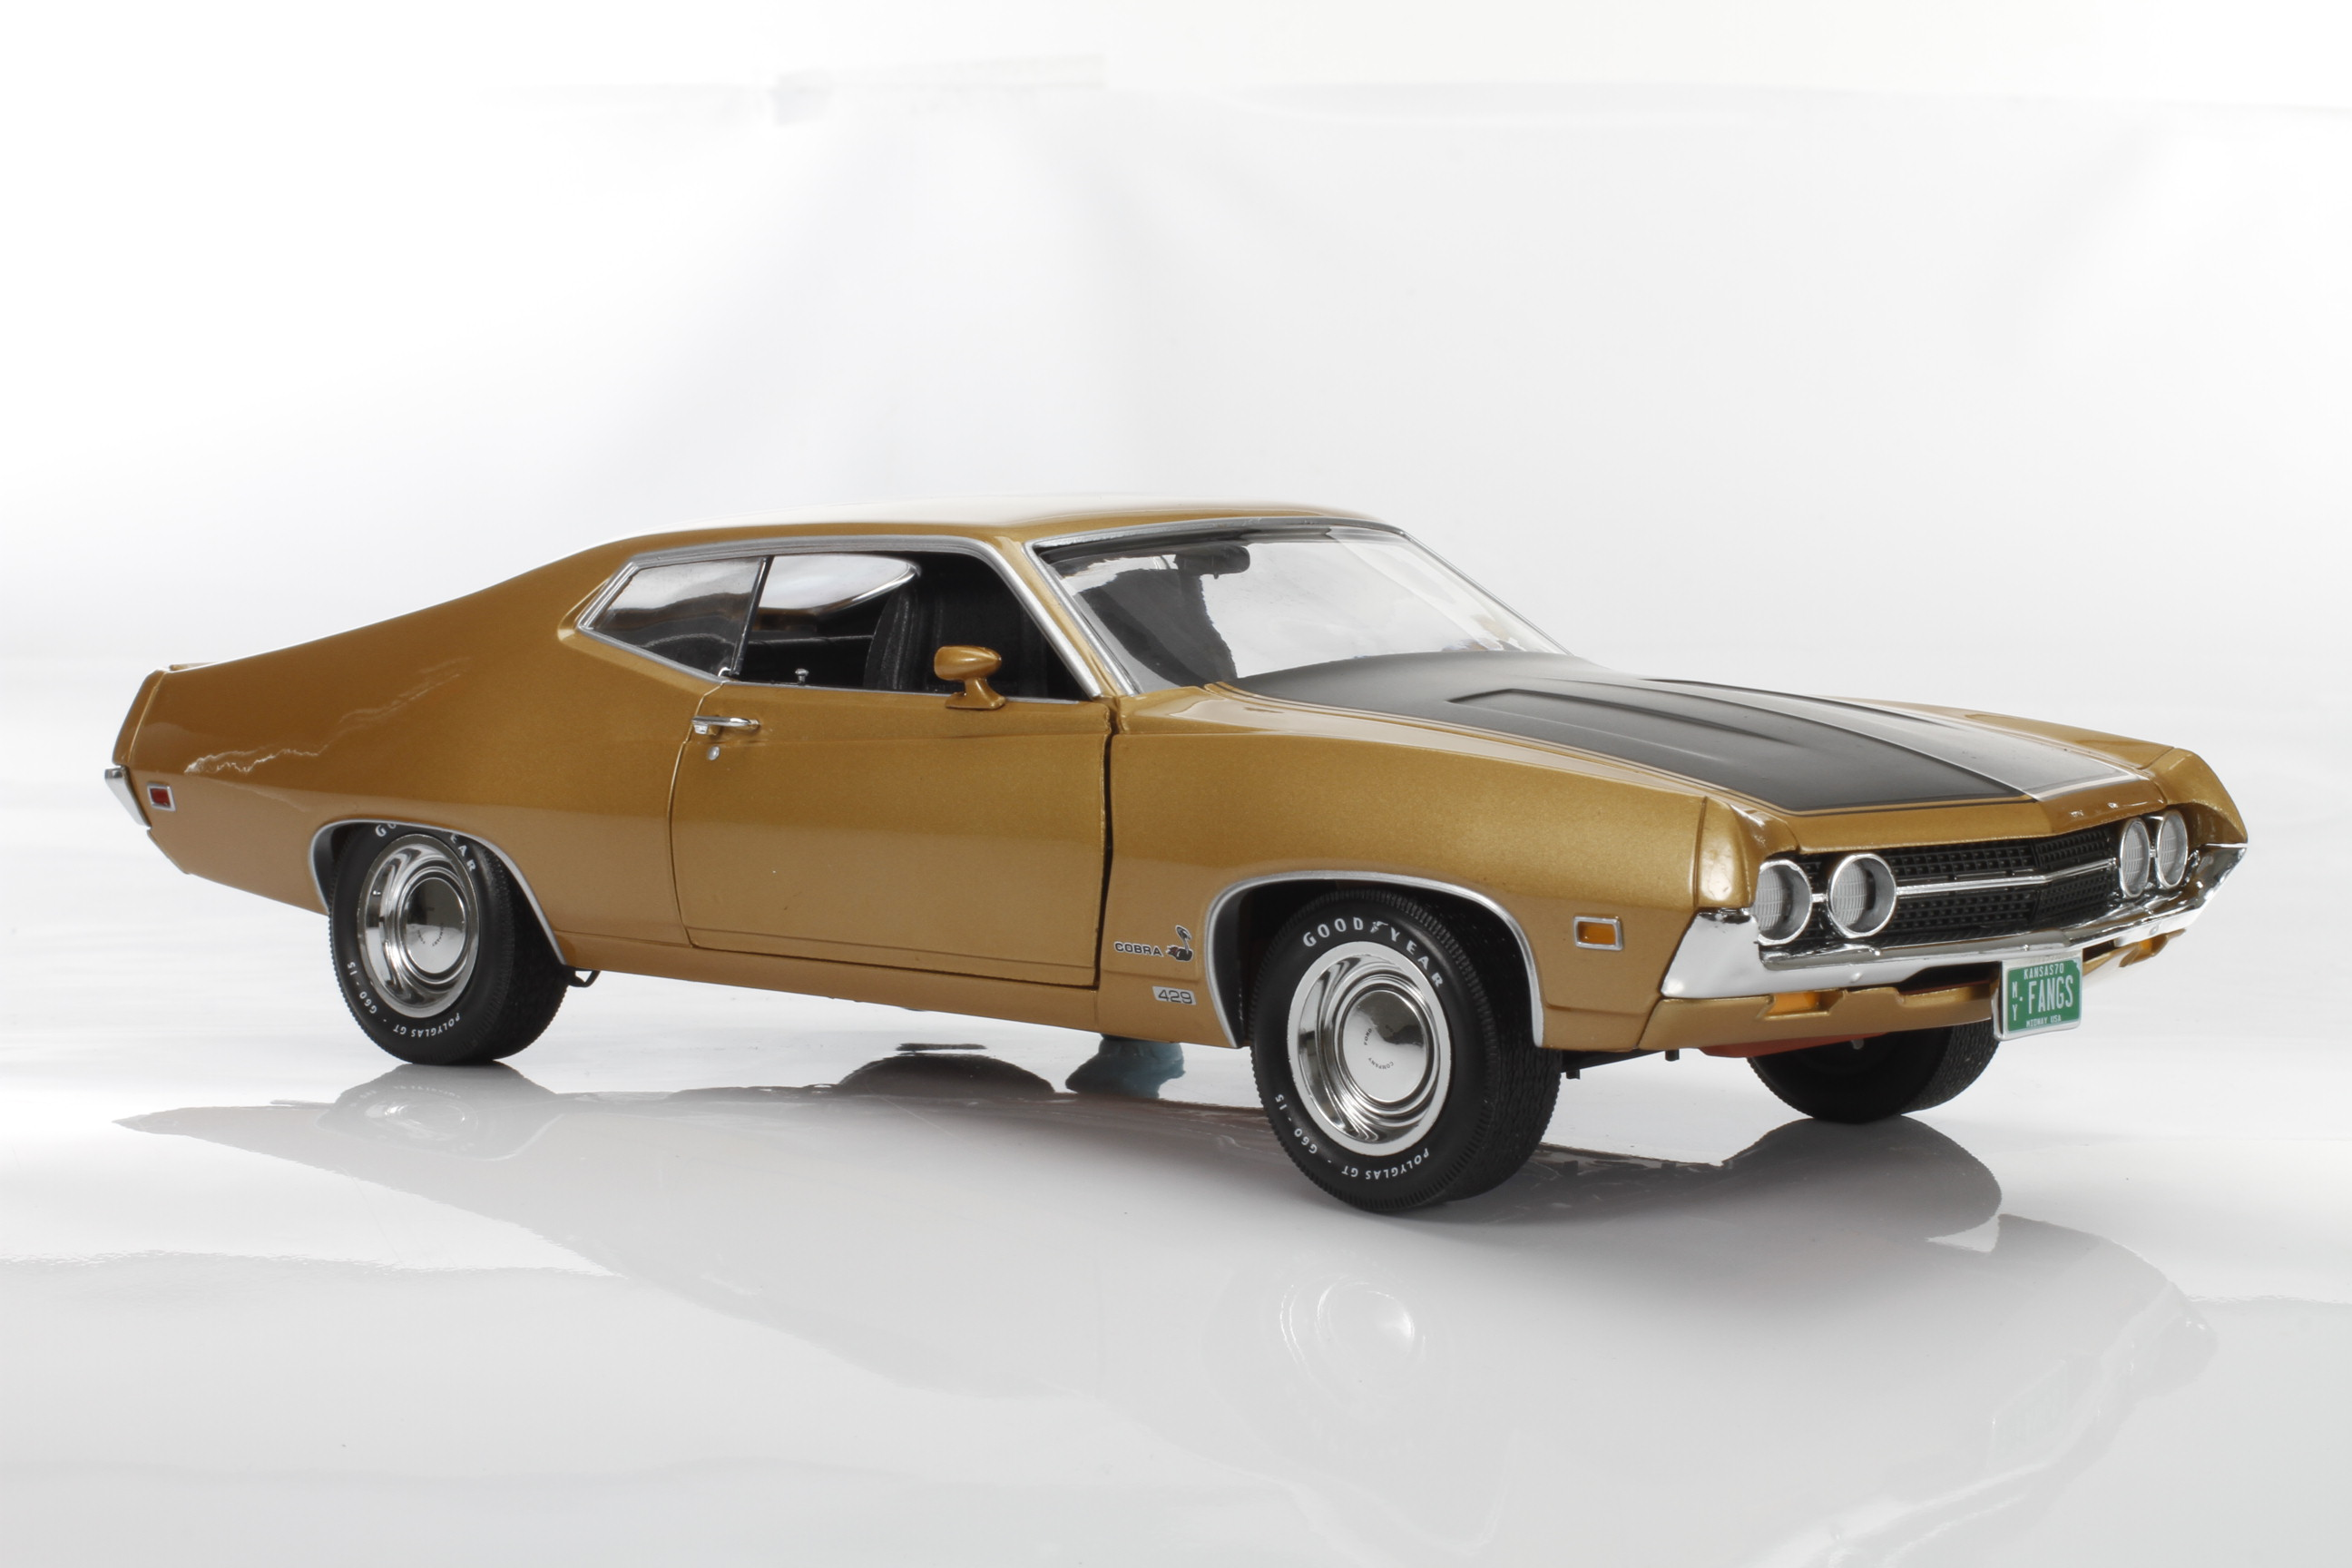 AutoWorld 1970 Ford Torino Cobra, Fanged Fastback! - Online